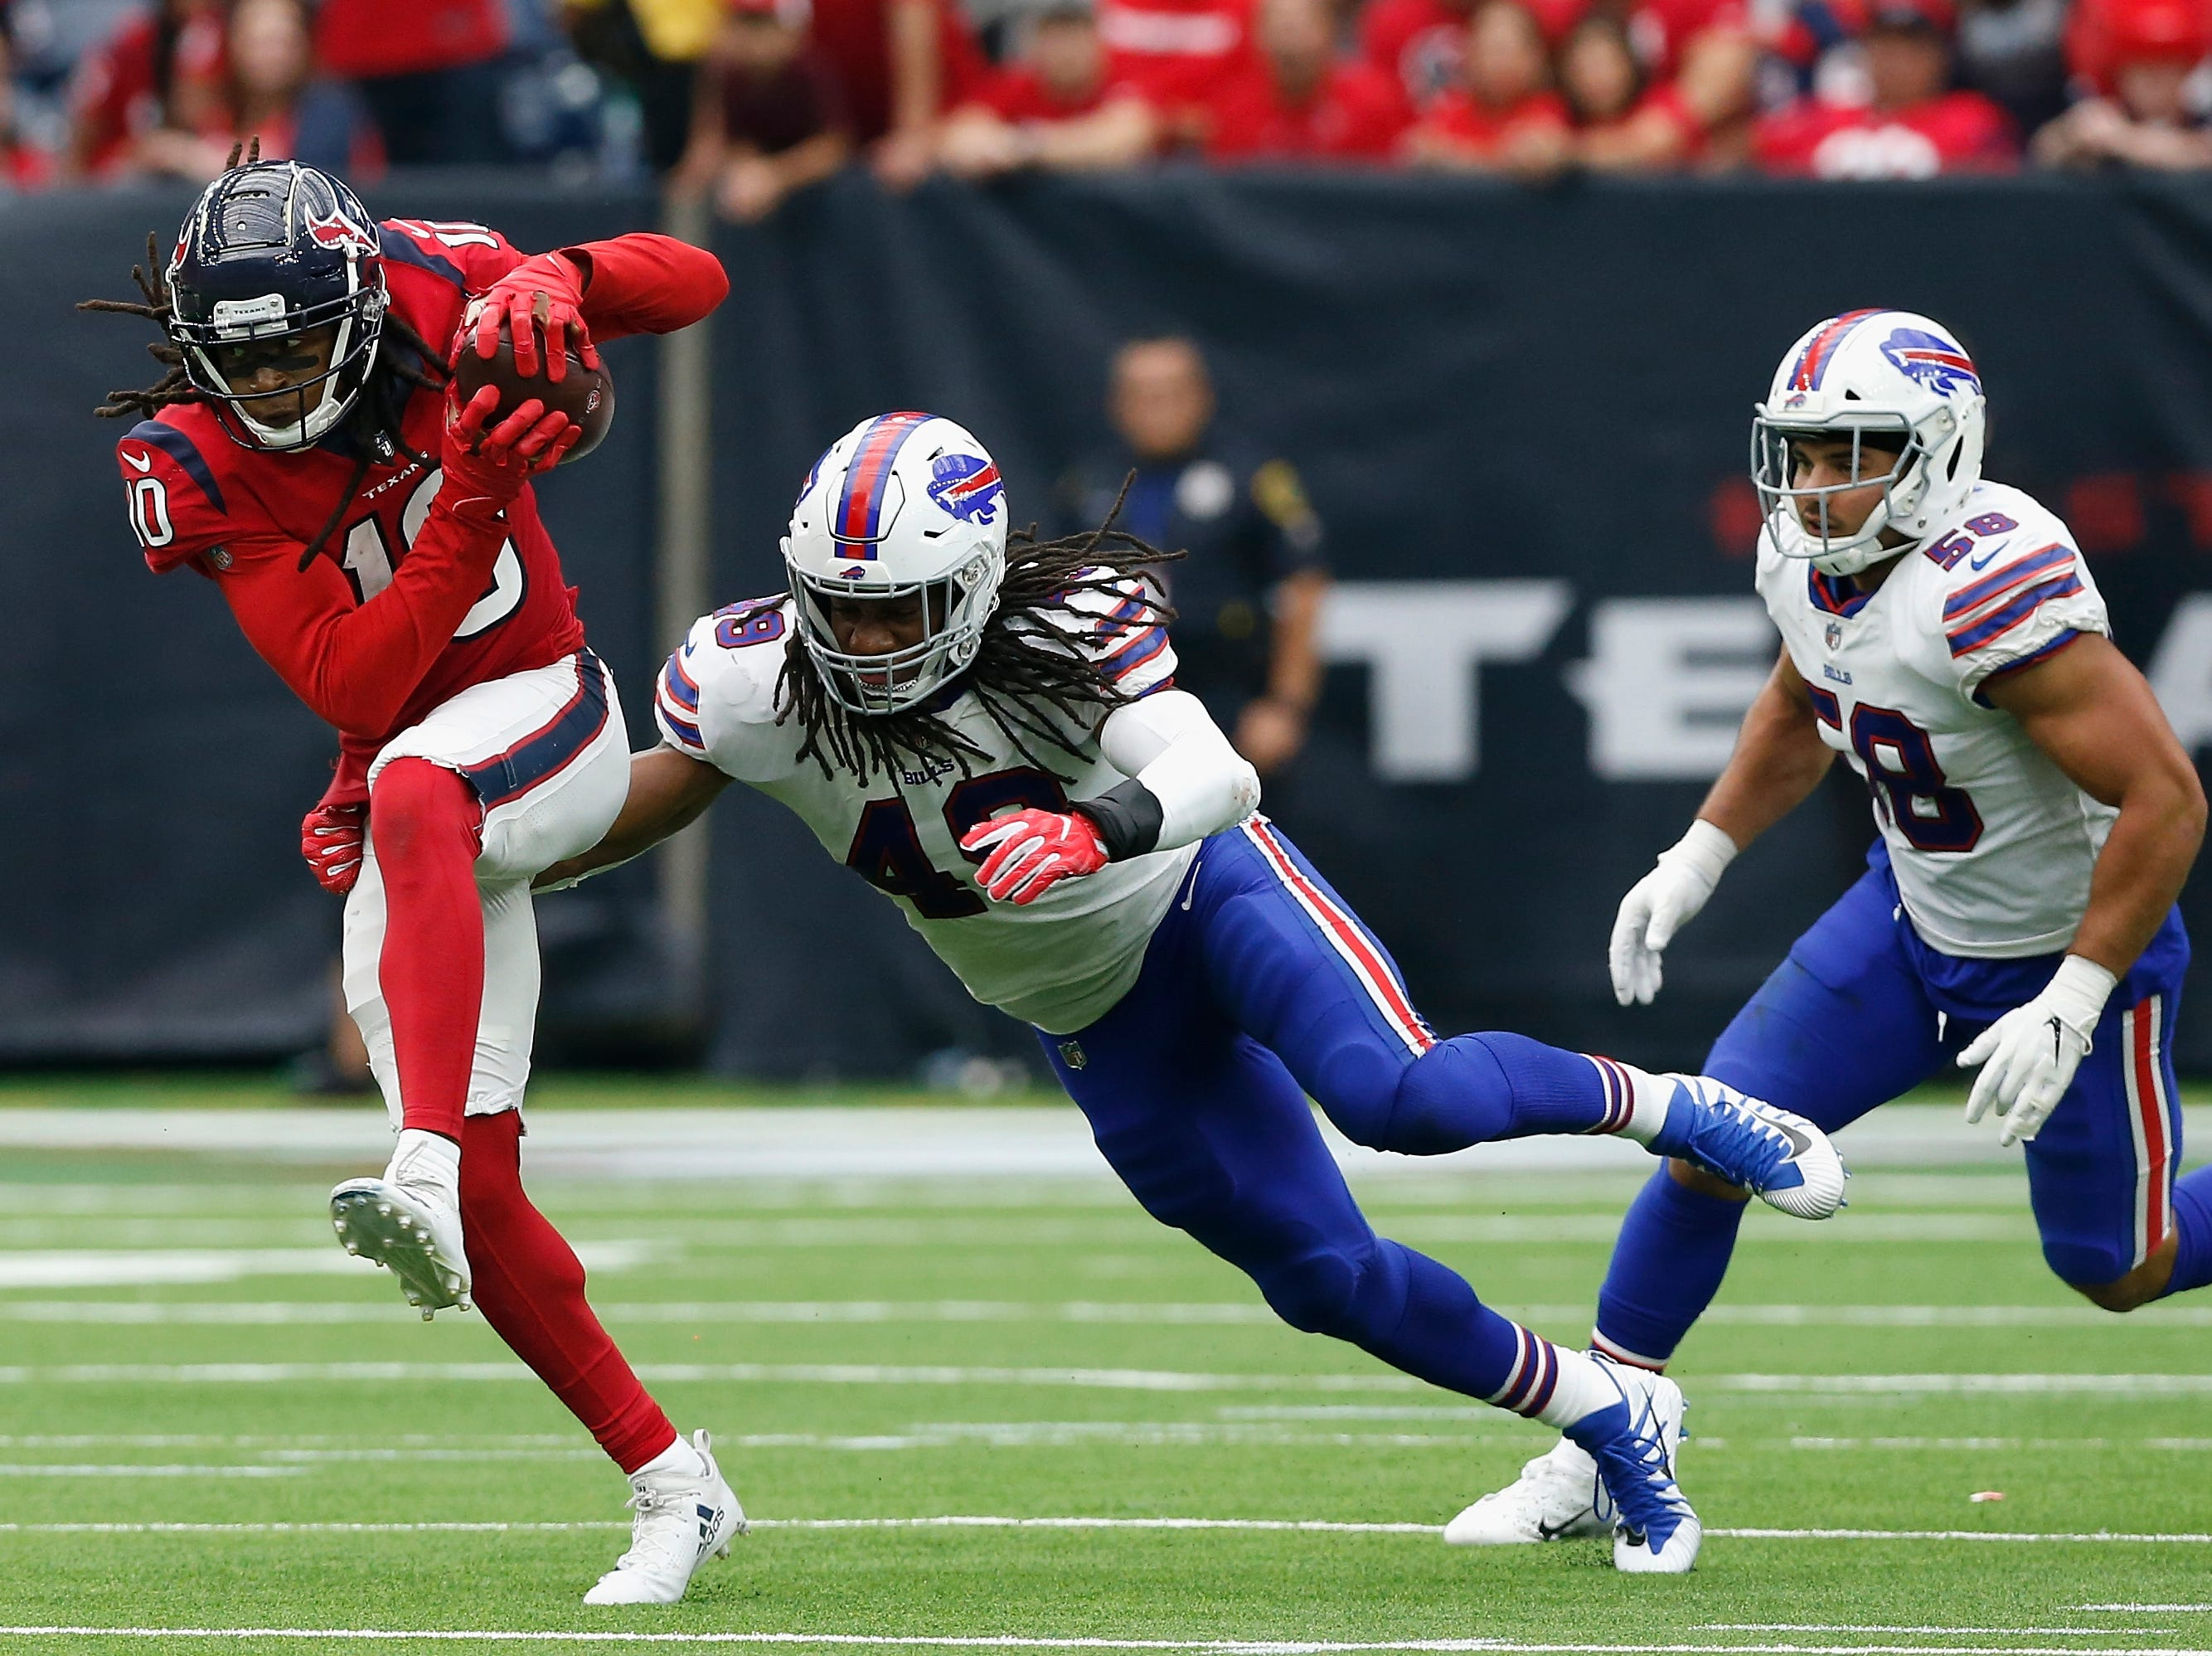 HOUSTON, TX - OCTOBER 14:  DeAndre Hopkins #10 of the Houston Texans runs after a catch in the fourth quarter defended by Tremaine Edmunds #49 of the Buffalo Bills at NRG Stadium on October 14, 2018 in Houston, Texas.  (Photo by Tim Warner/Getty Images)